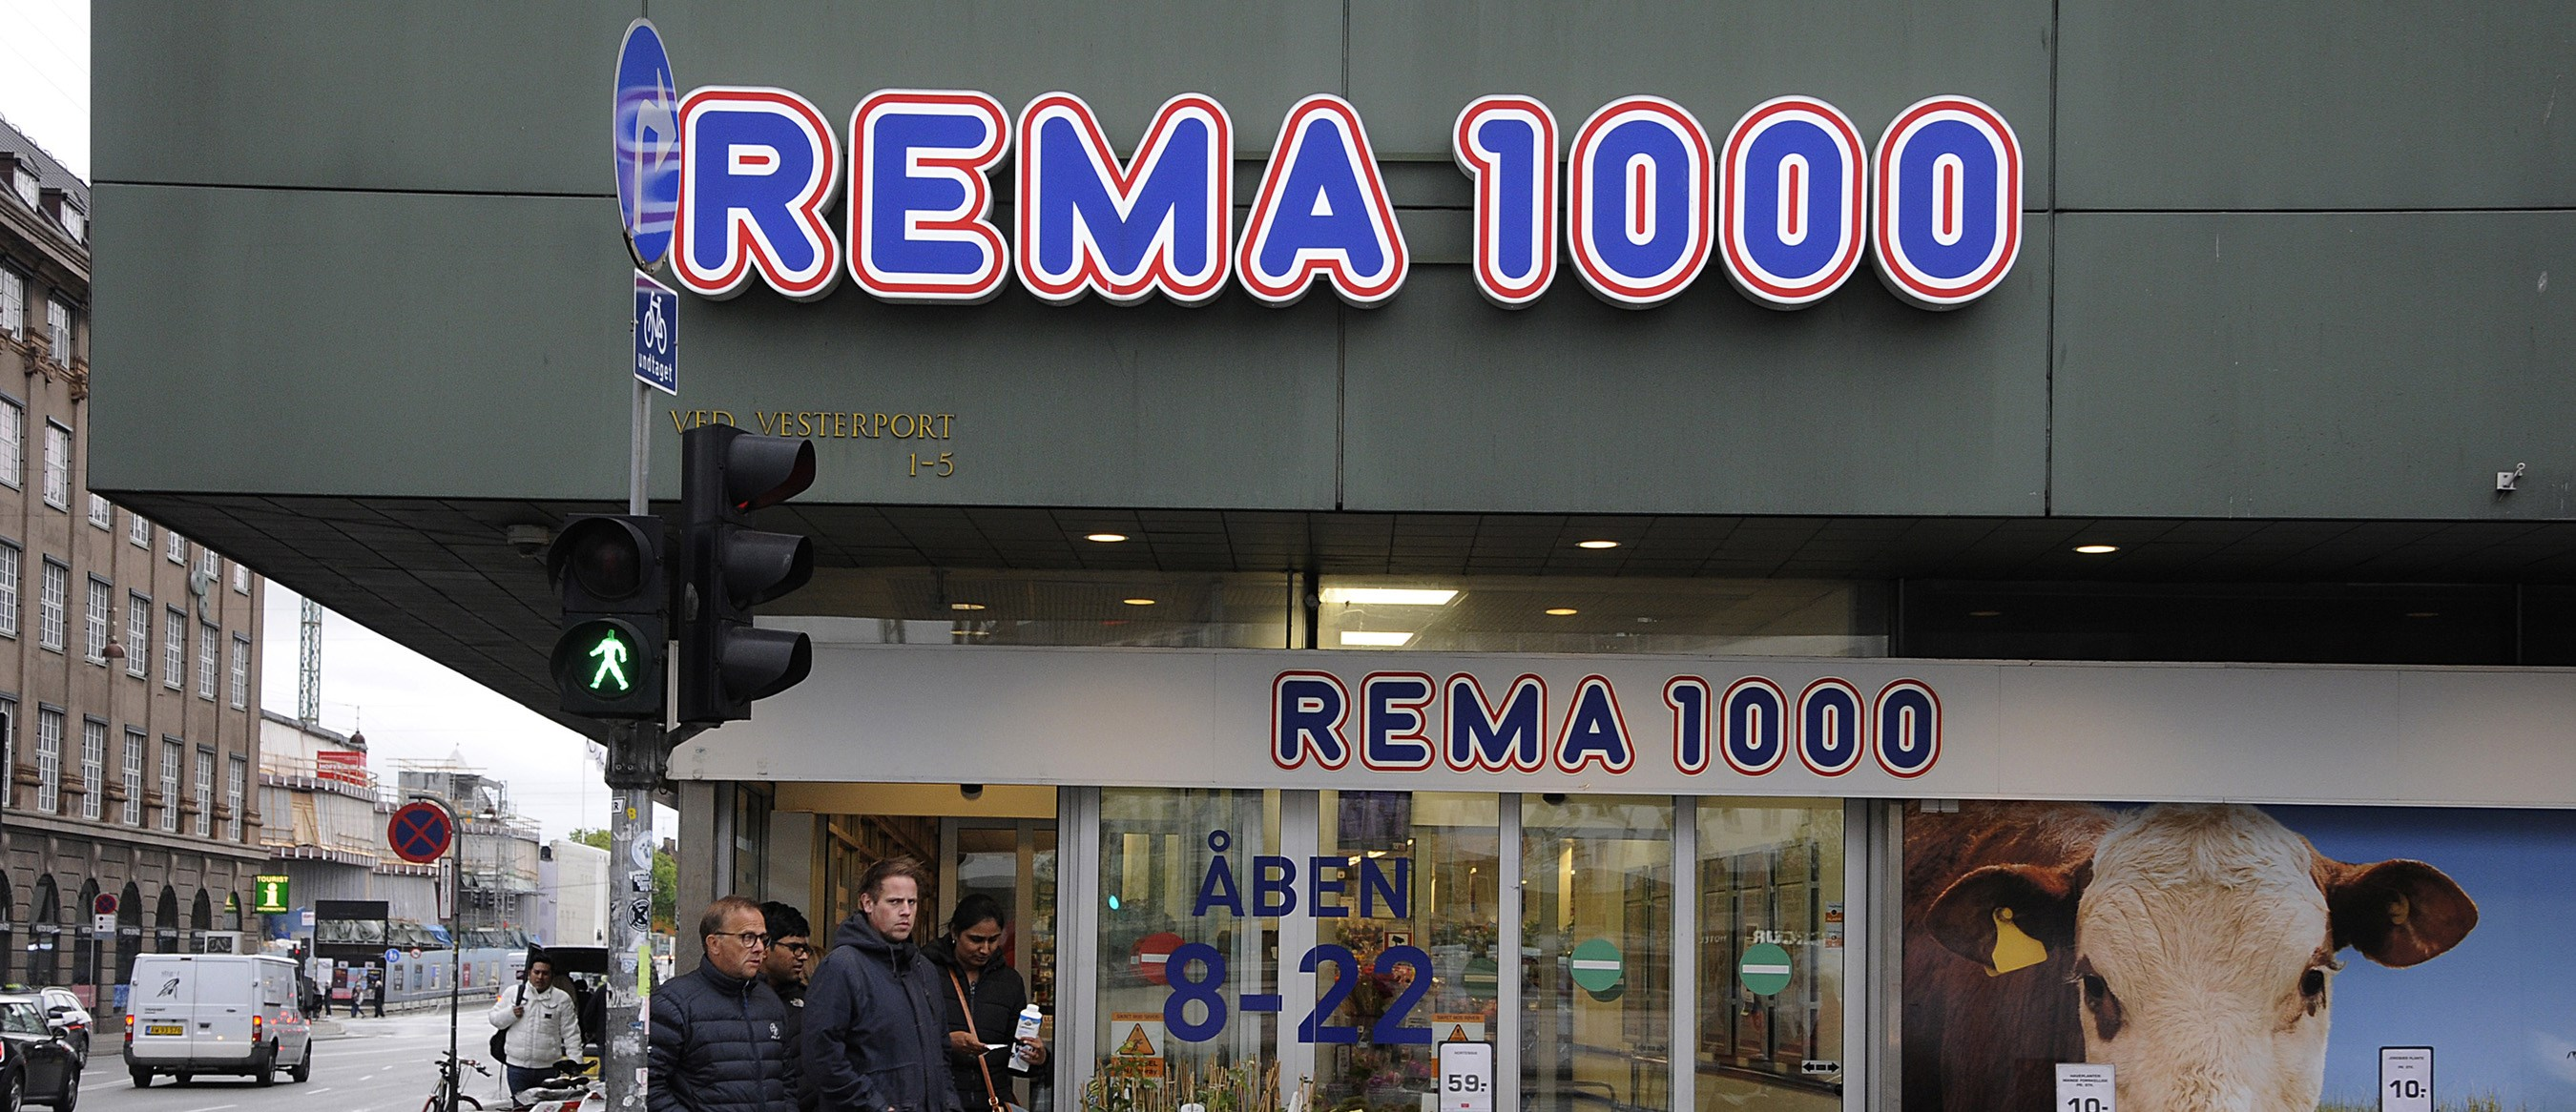 Danish Rema 1000 store. Photo: Deanspictures/Dreamstime